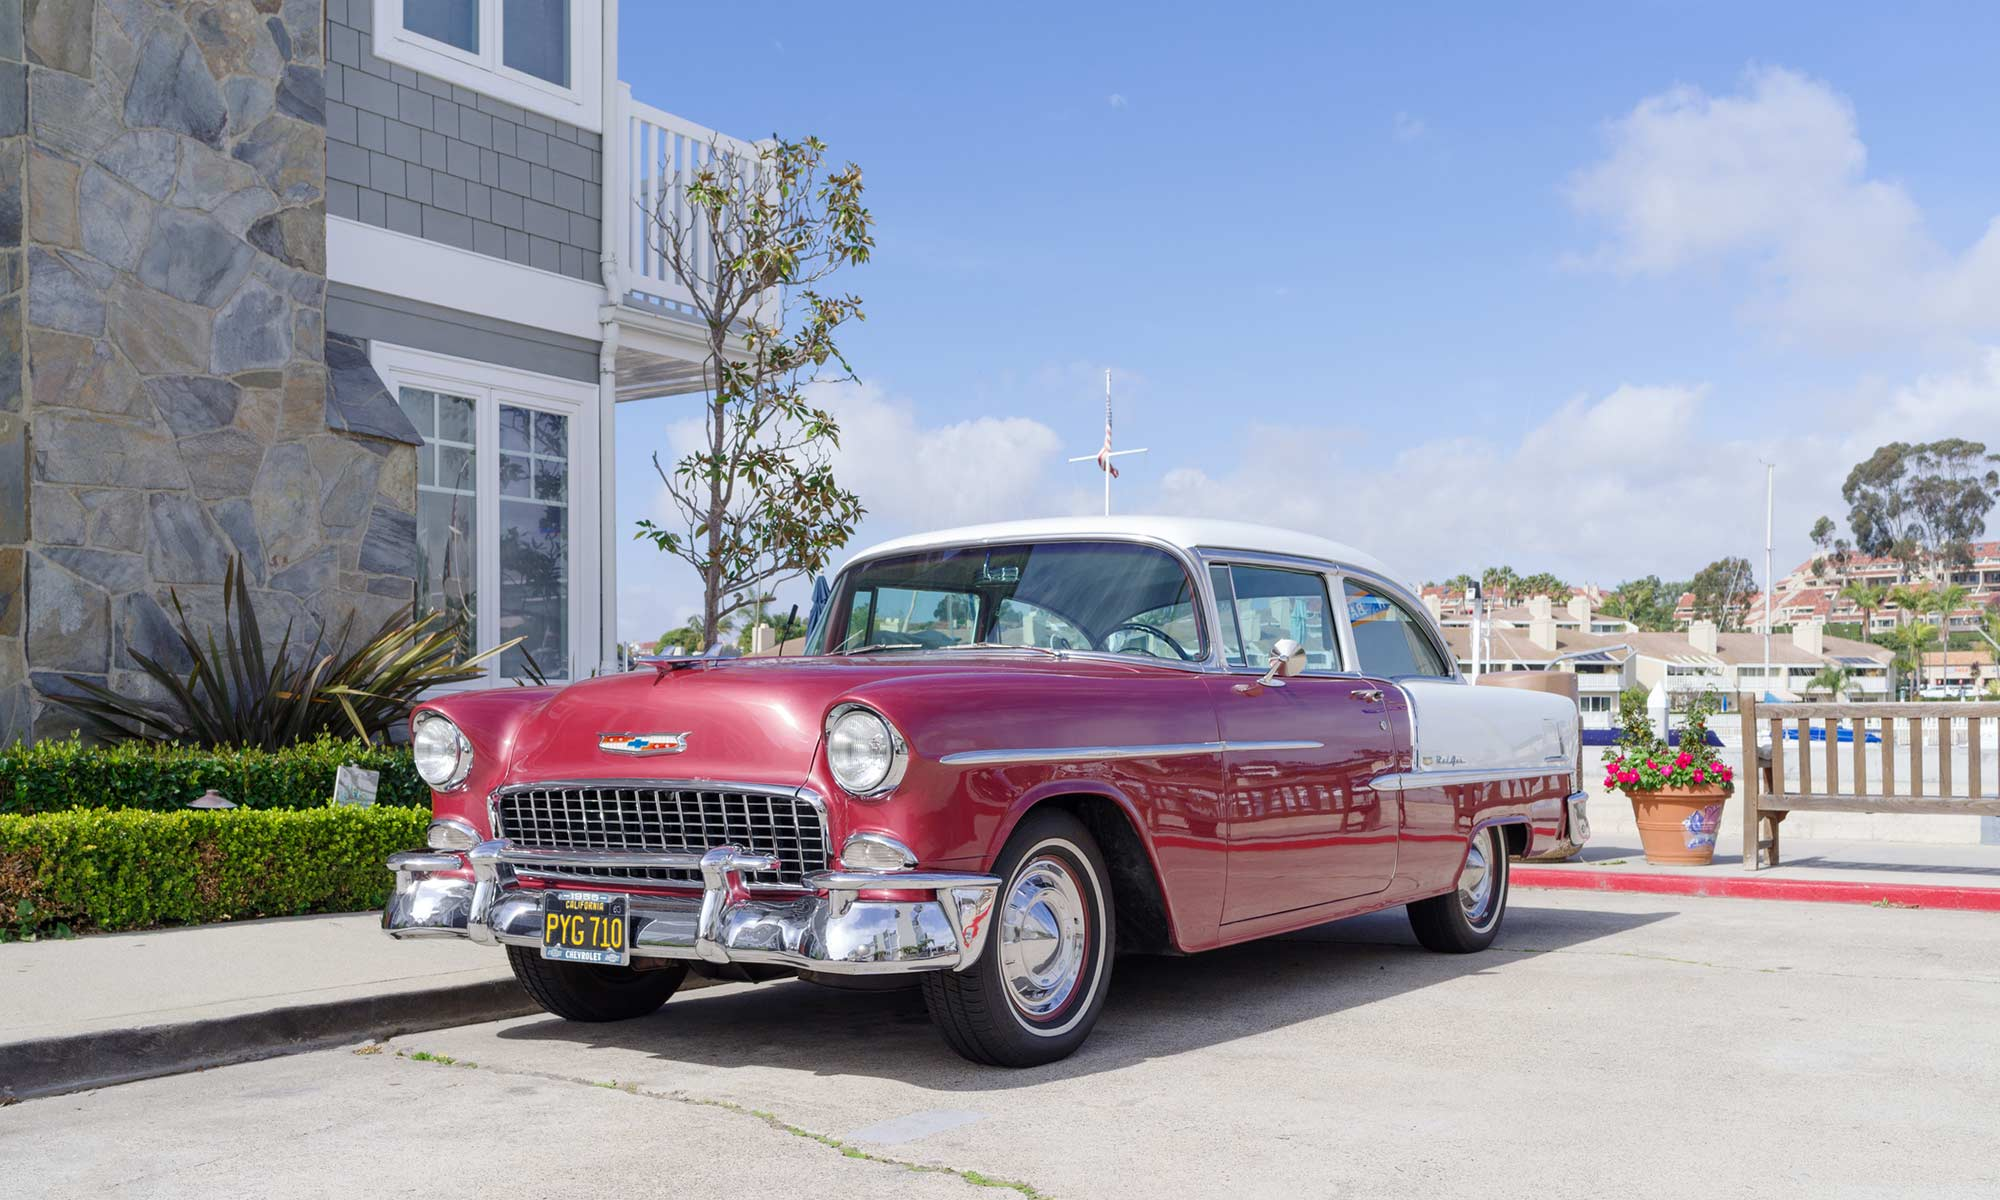 A red 1955 Chevy Bel Air.